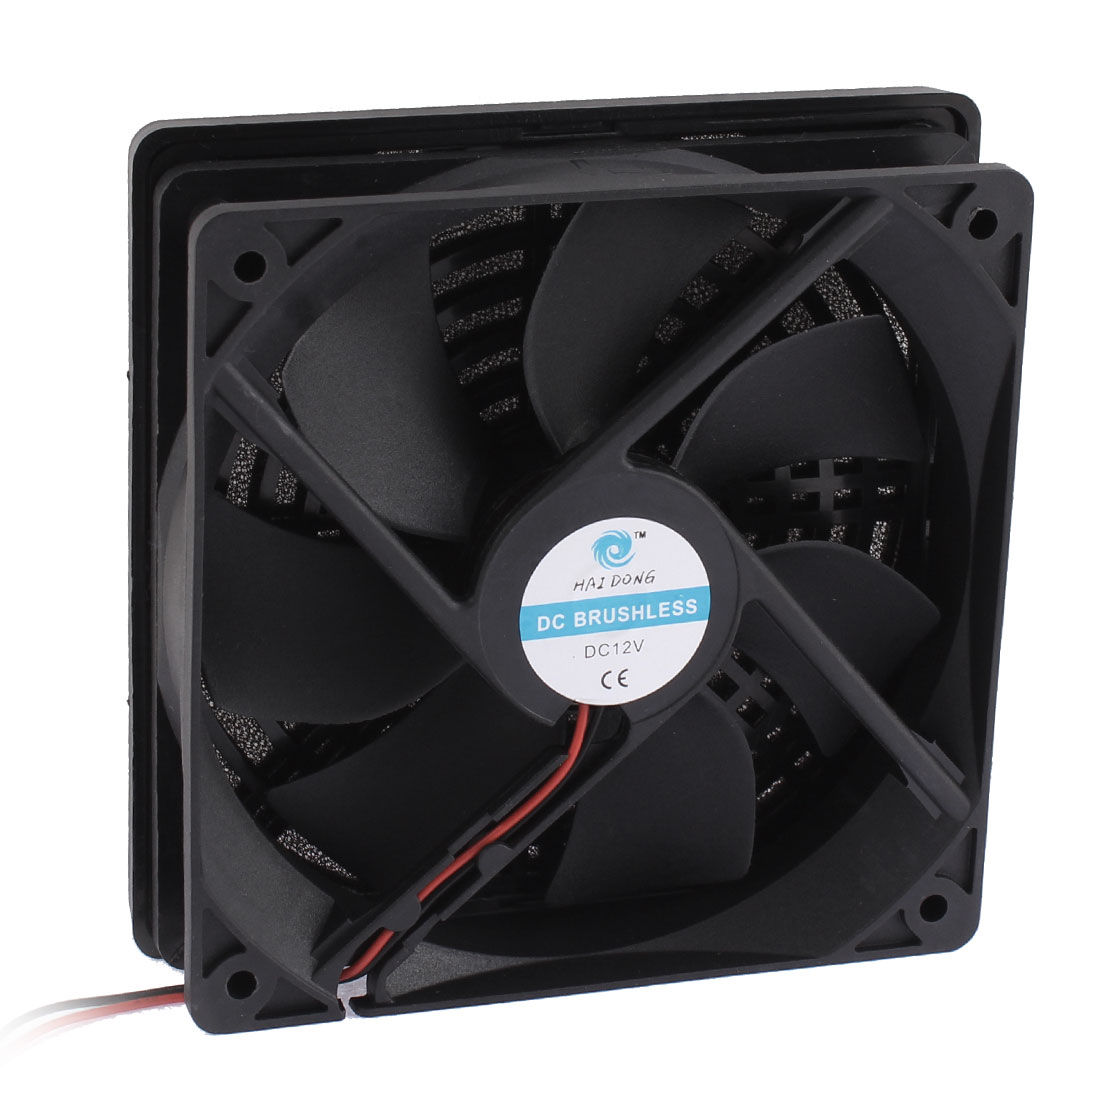 DC 12V PC Cooling Fan Cooler Axial w Dust Filter Mesh Black